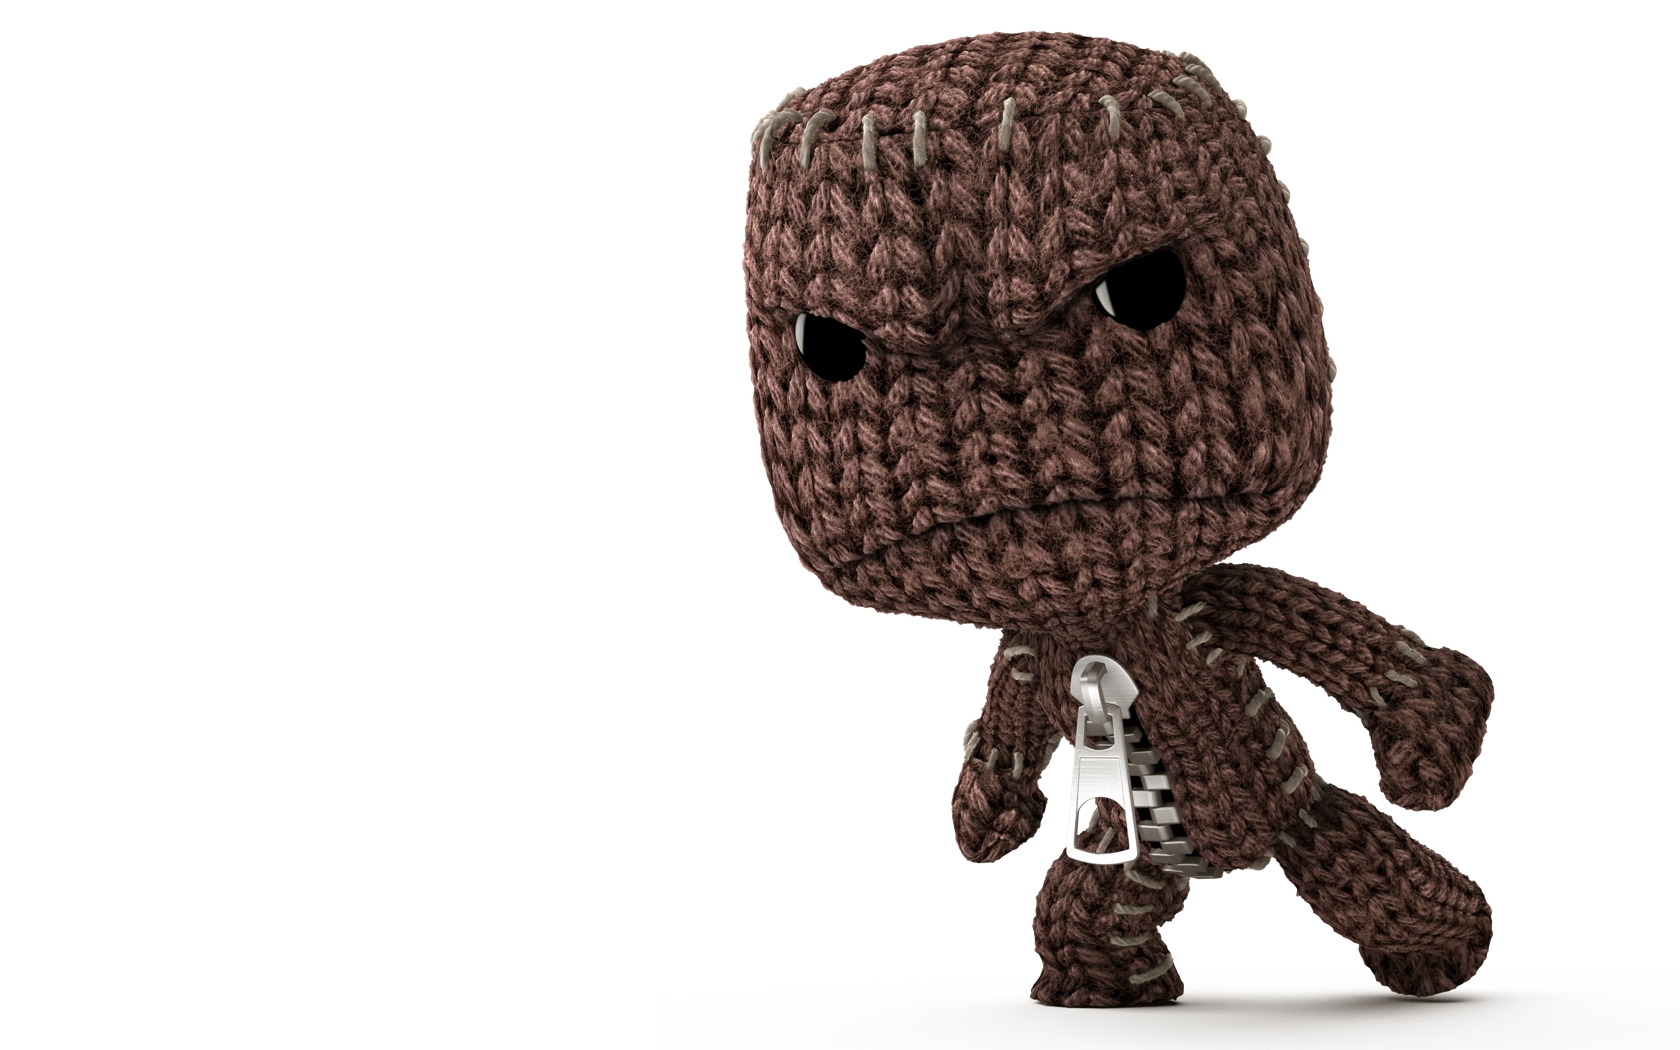 sackboy wallpaper A1